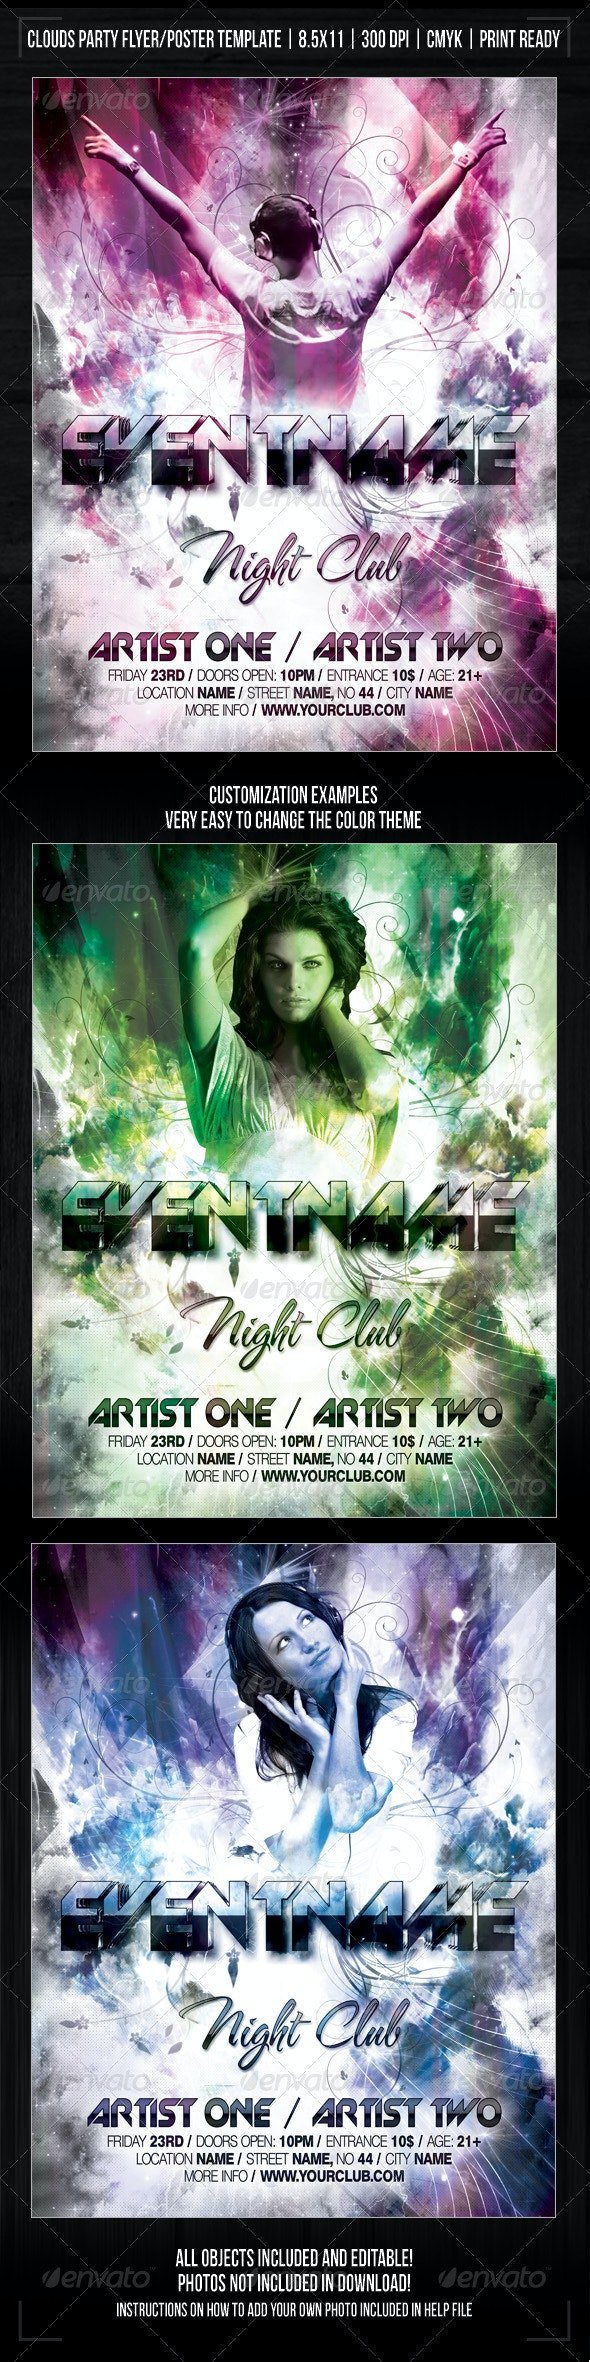 Night Club Explosion Party Flyer/Poster Template - Clubs & Parties Events